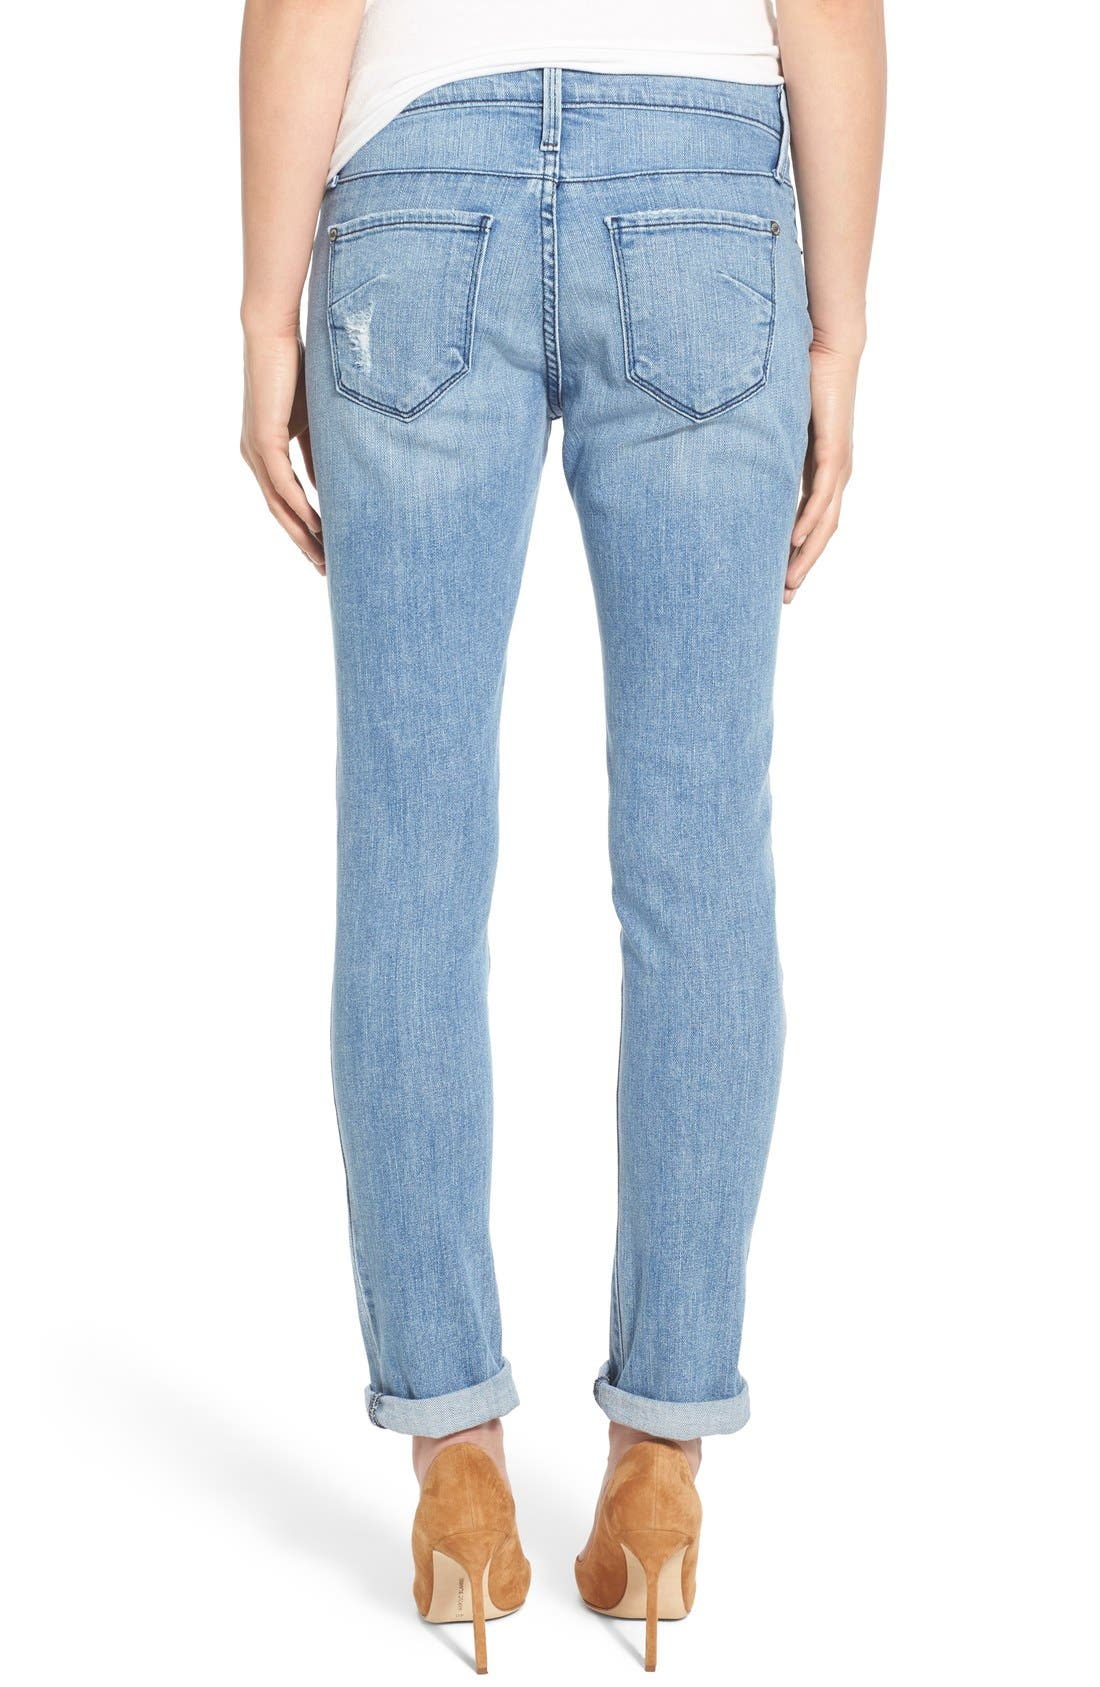 Alternate Image 2  - James Jeans Distressed Slim Boyfriend Jeans (Joy Ride)